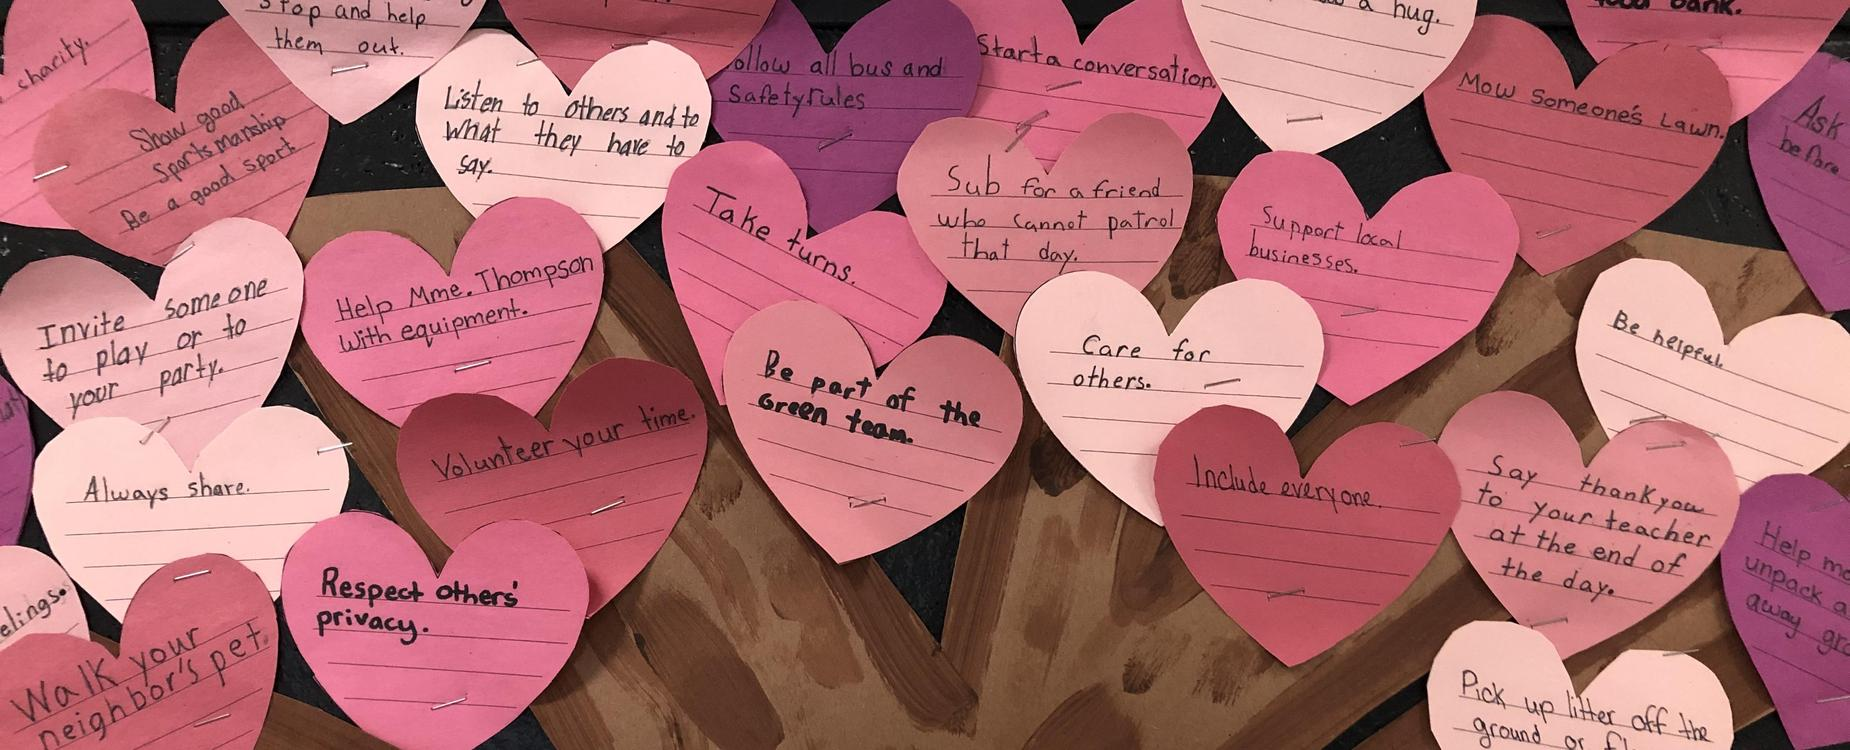 A closer look at a billboard with pink heart-shaped leaves on a tree that list acts of kindness, by the students in Mme. Knutson's Grade 4/5 class.